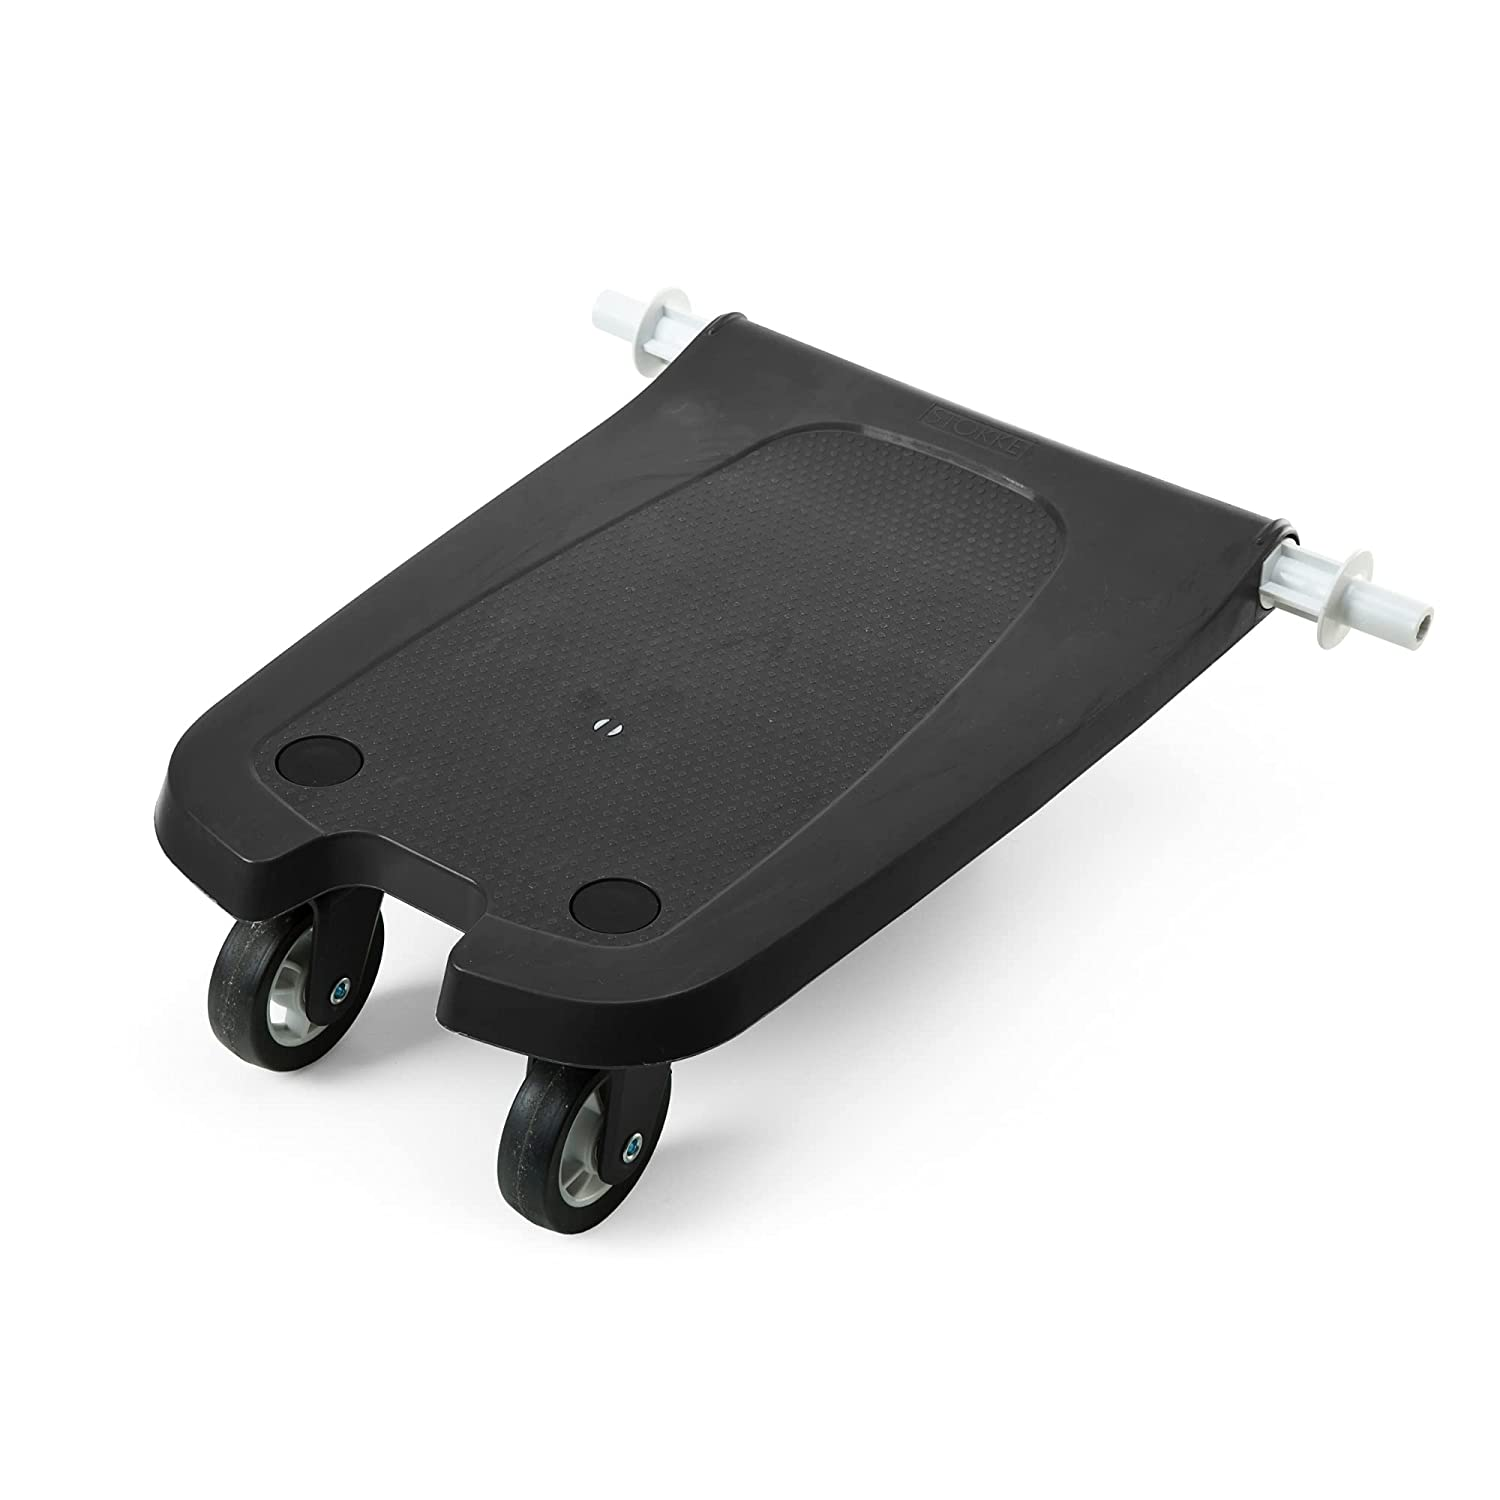 Stokke Xplory Sibling Board, Black - Allows Your Toddler to Ride Next to Their Sibling - Compatible with Stokke Xplory Strollers